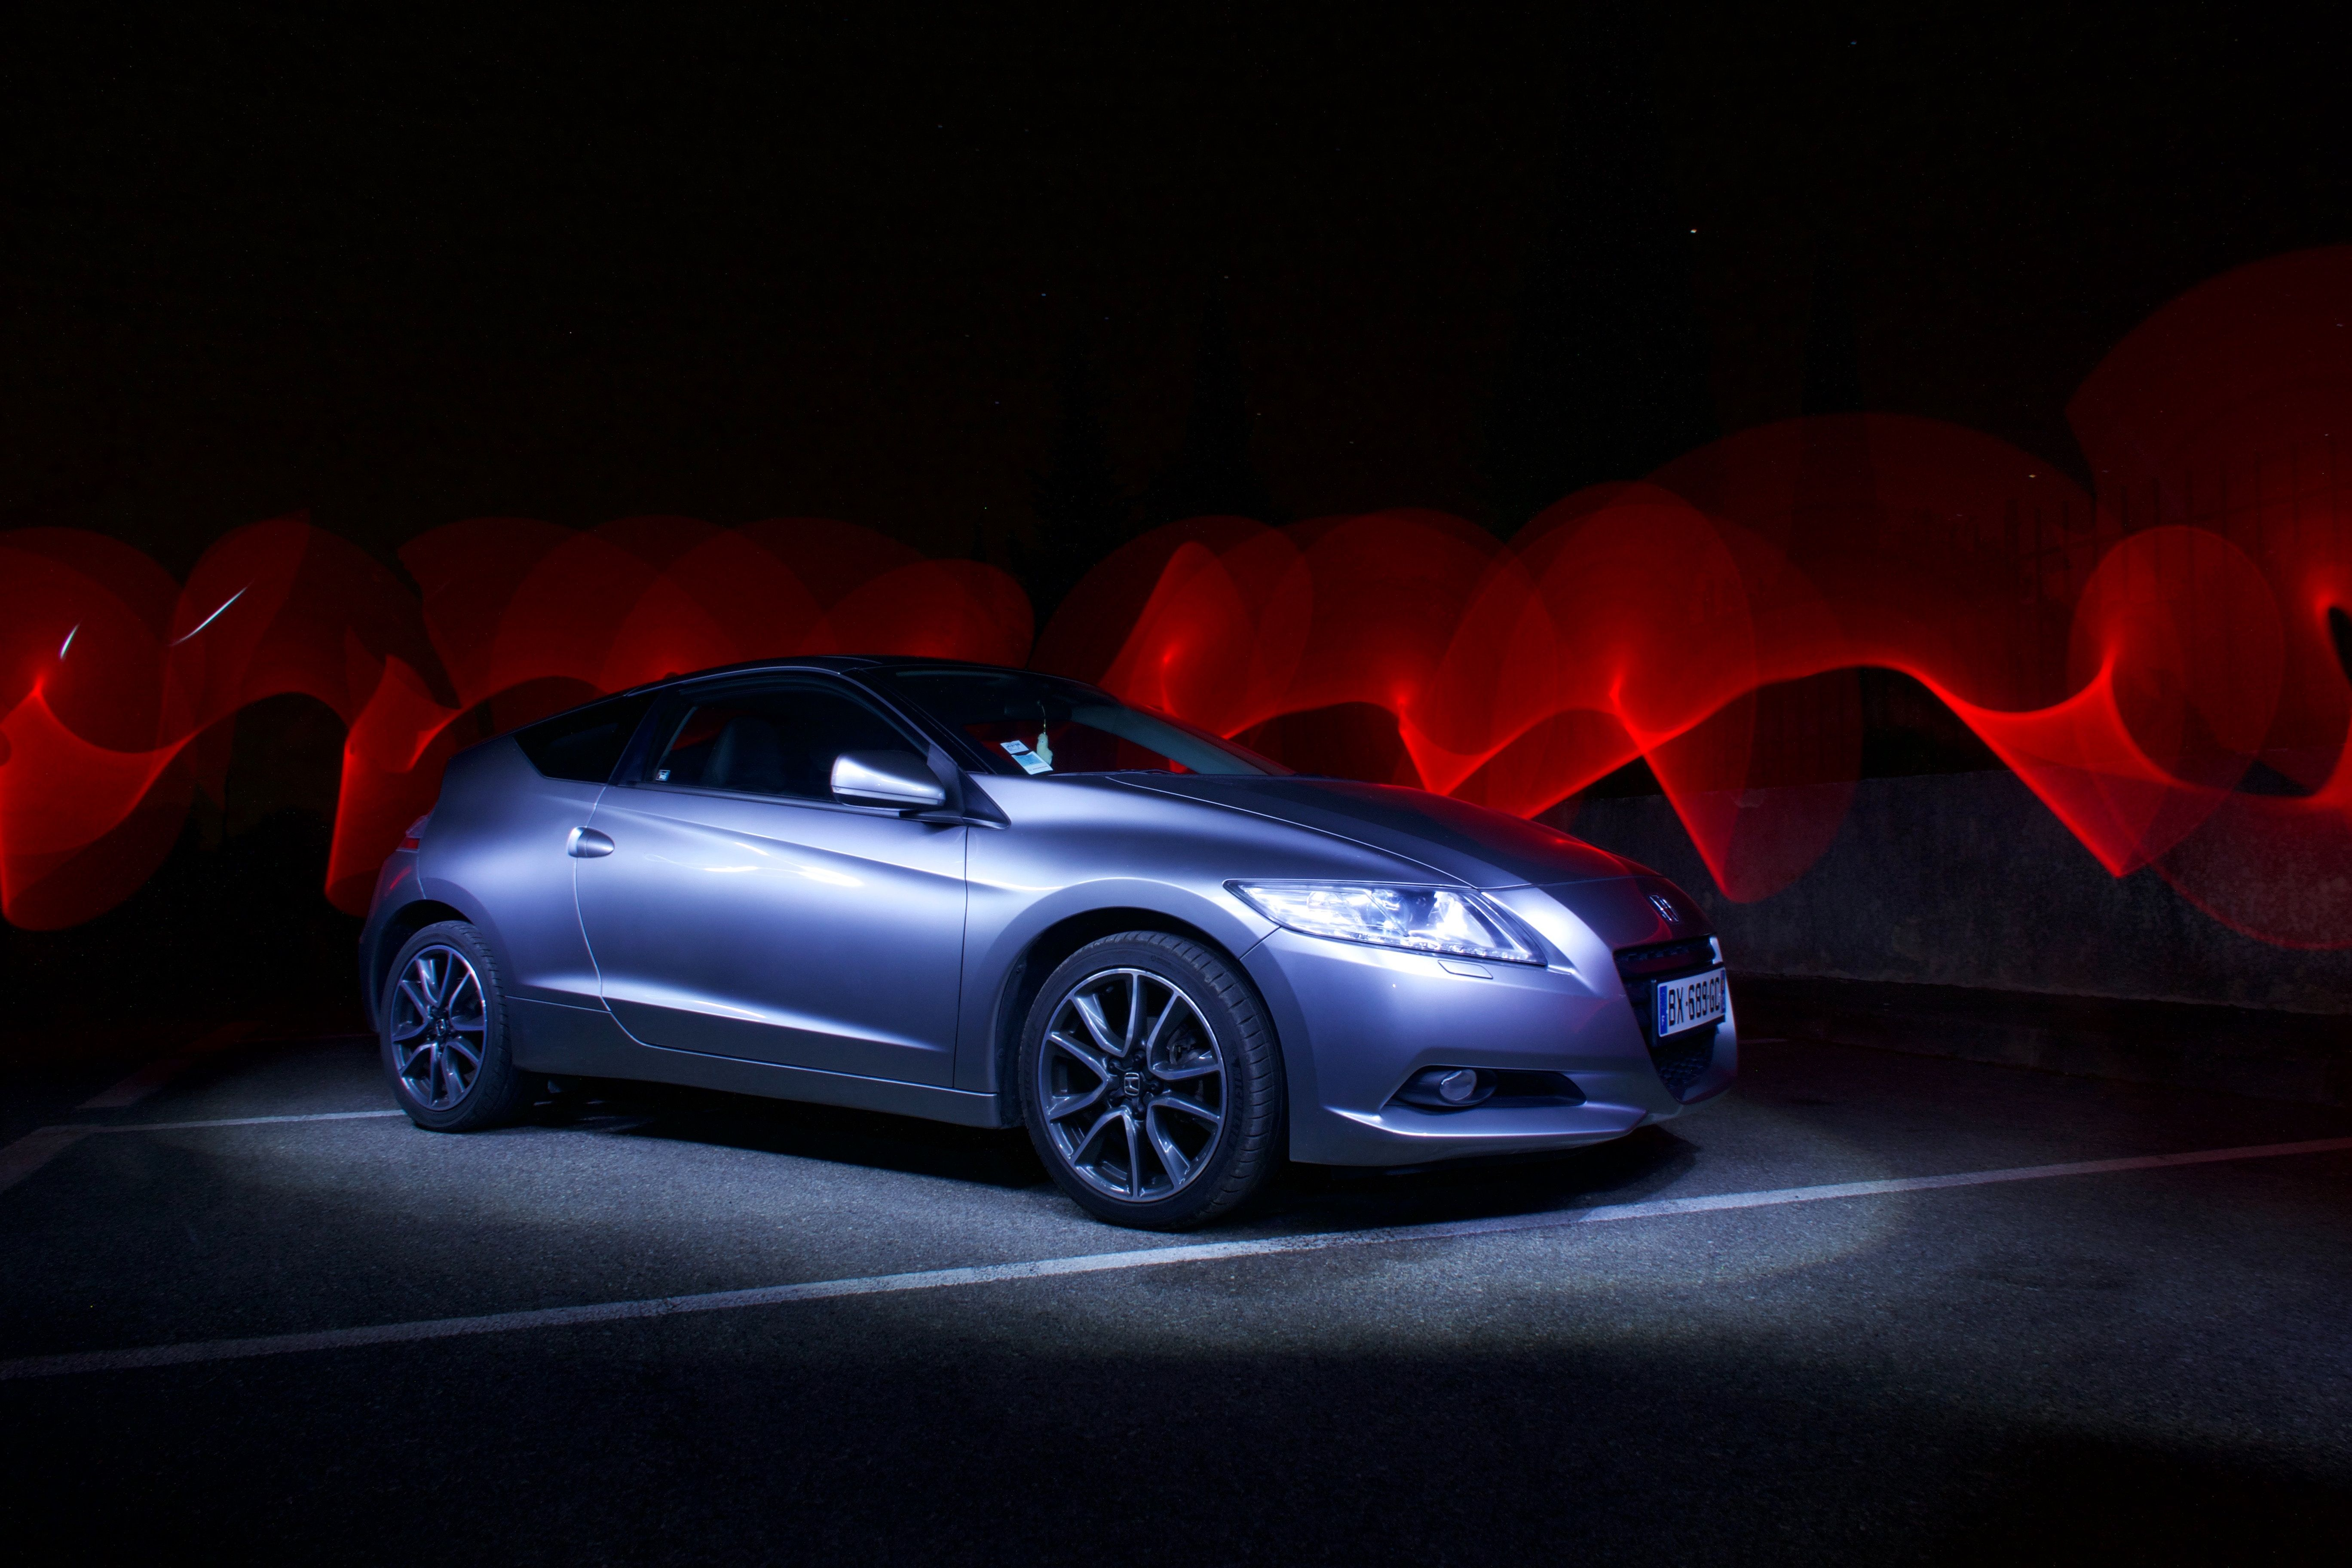 Honda Cr Z With Background Photo Effect Done With A Long Exposure